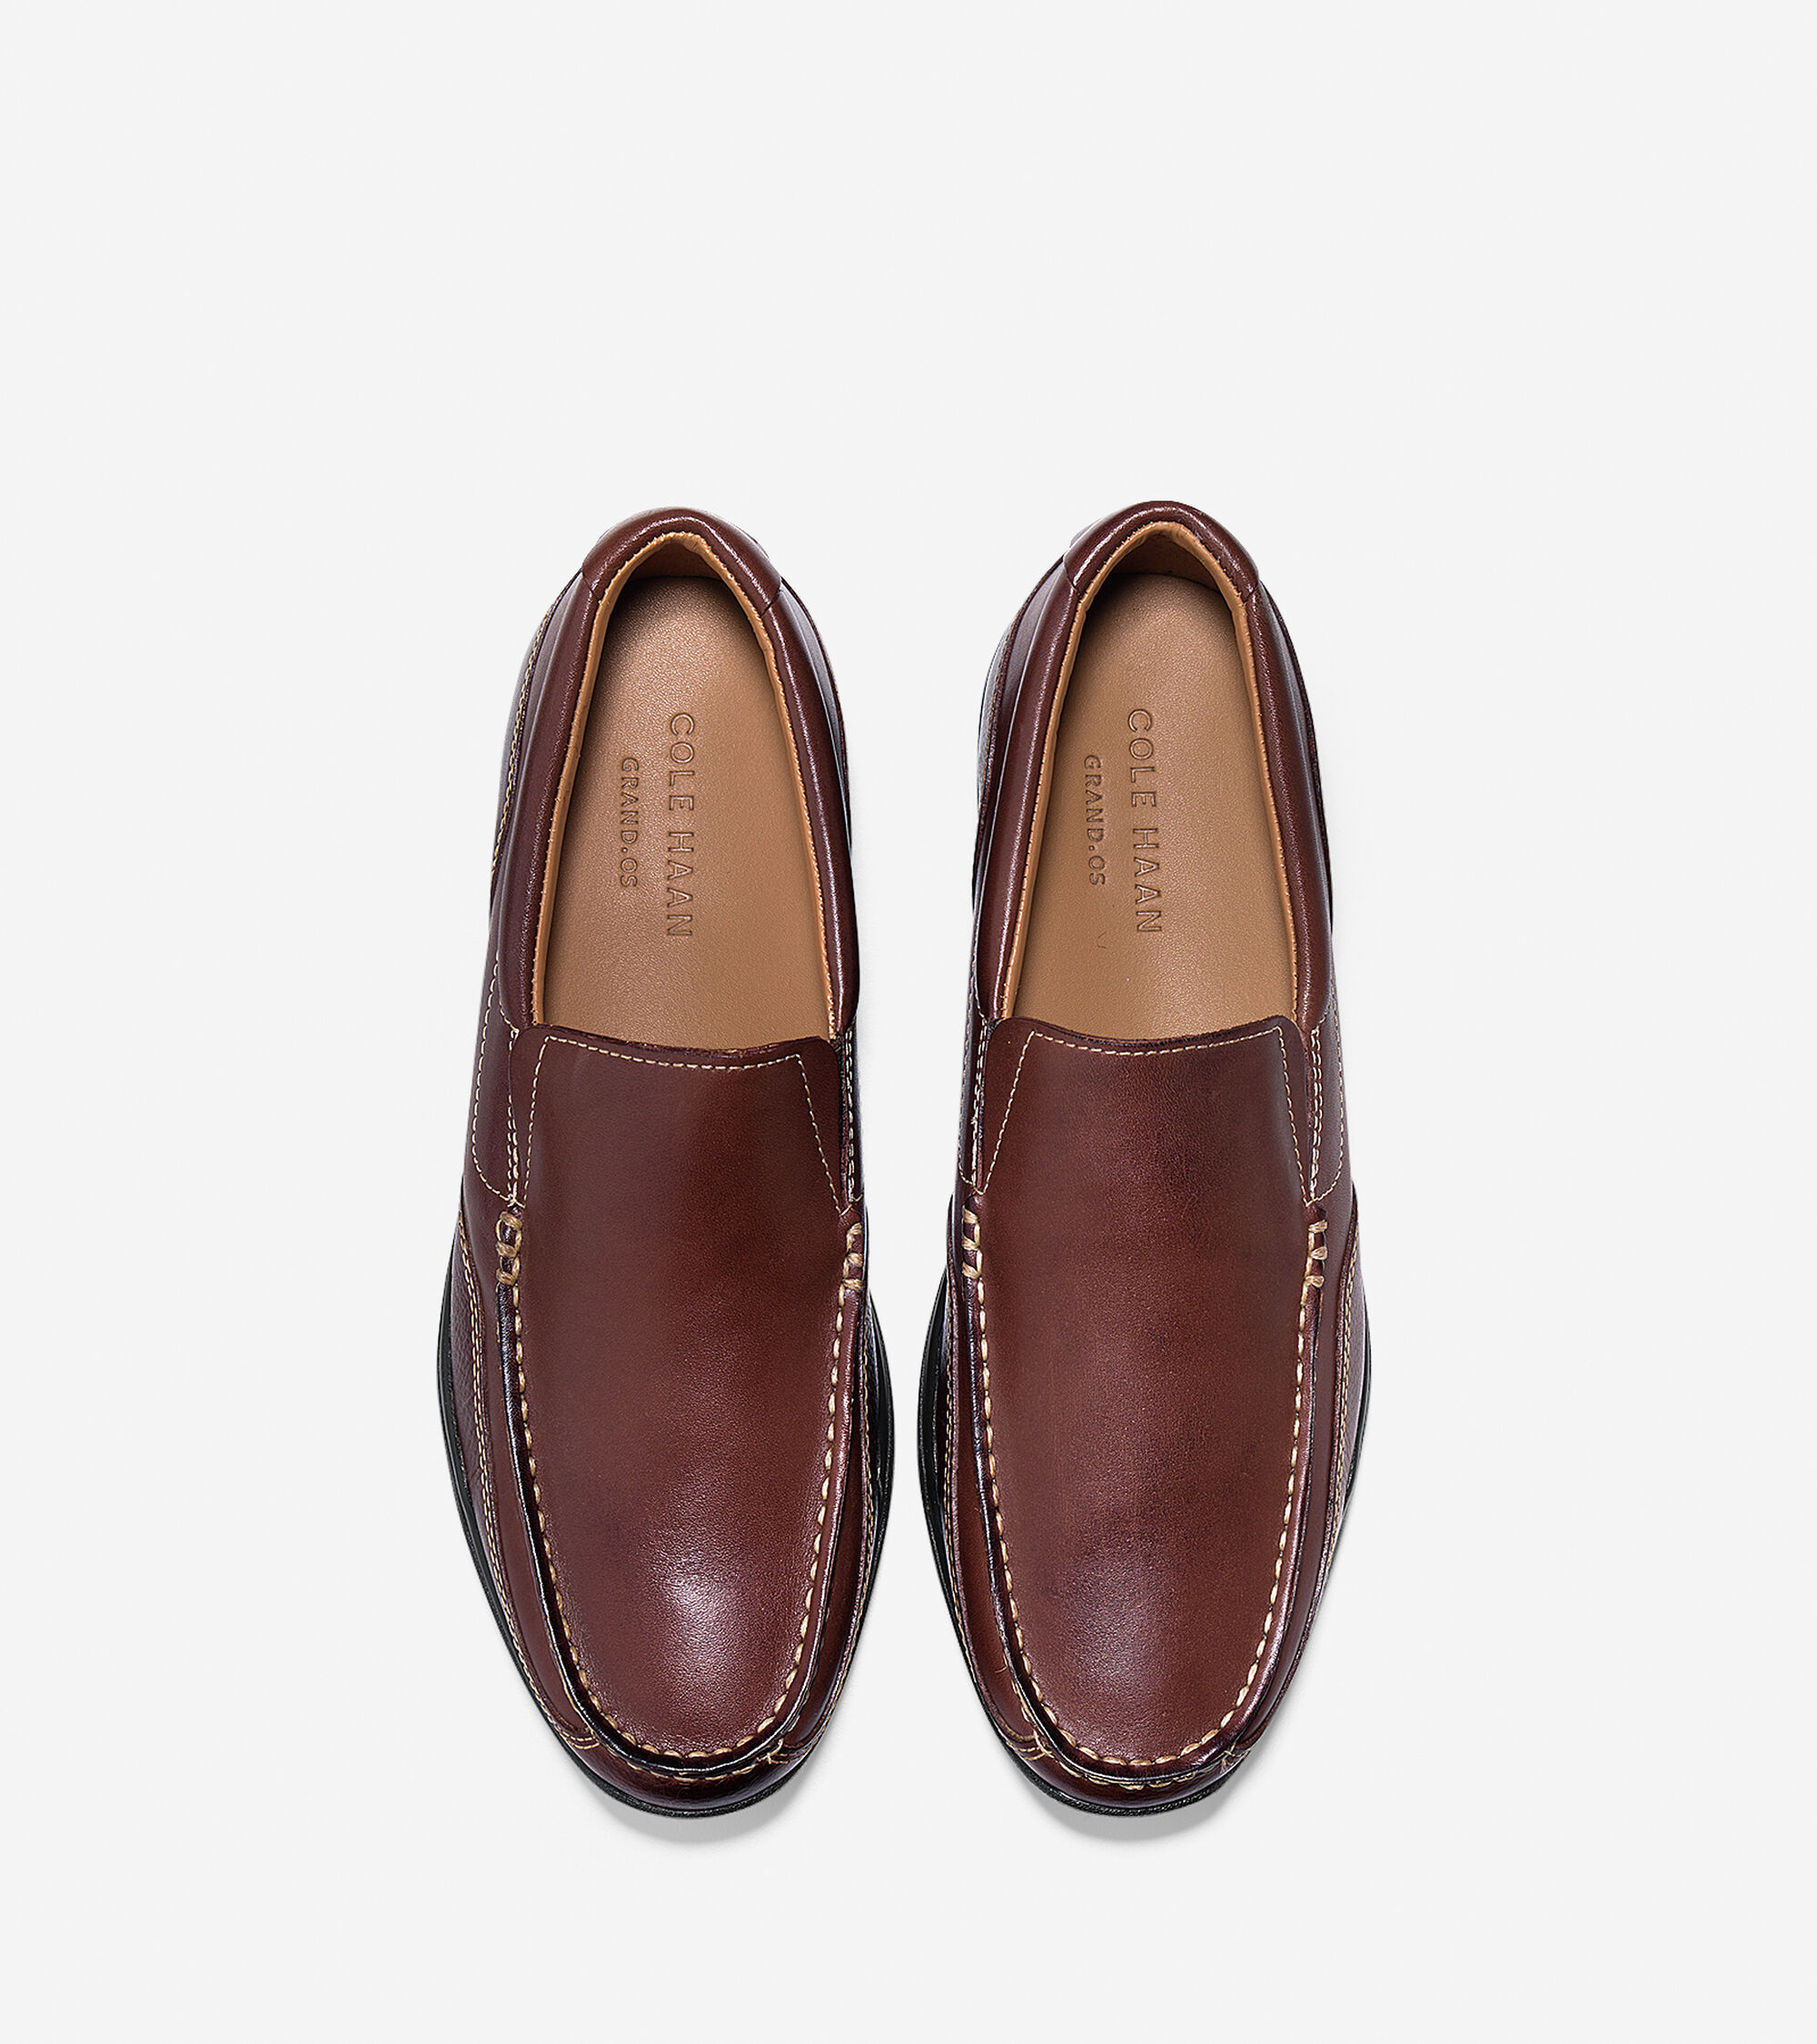 cd25d19977b Hughes Grand Venetian Loafer  Hughes Grand Venetian Loafer ...